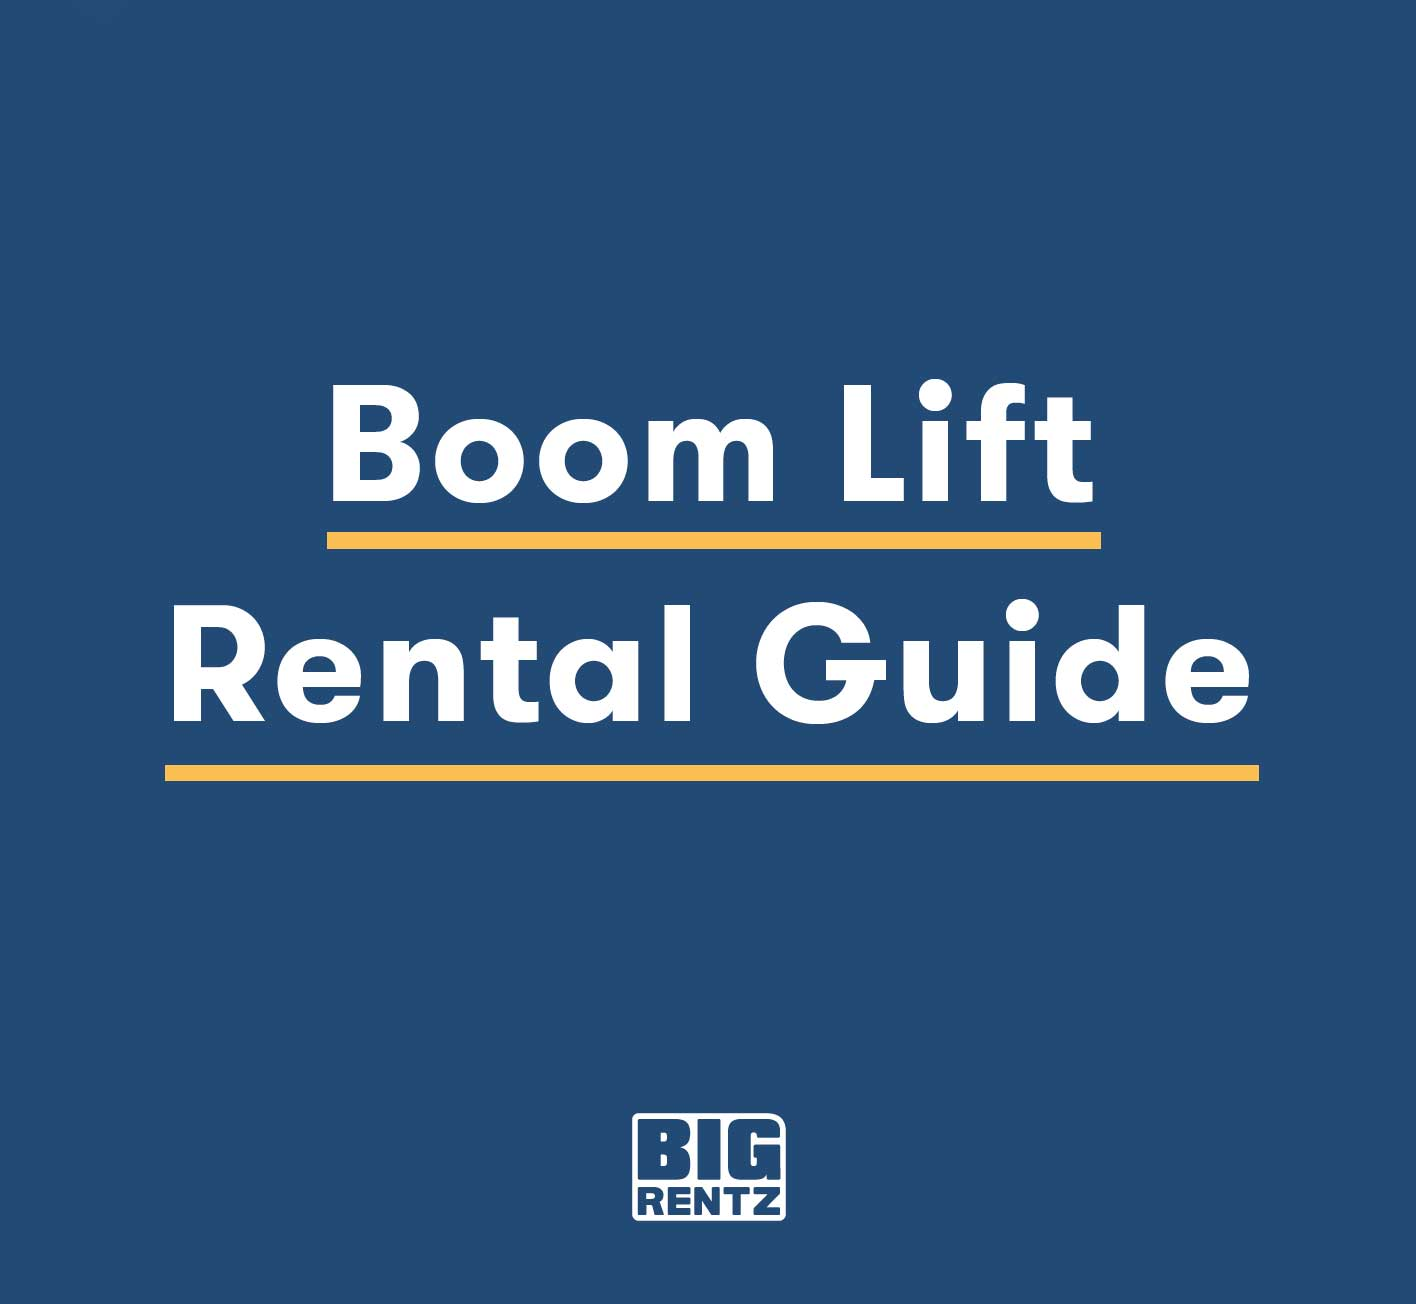 Boom Lift Rental Guide